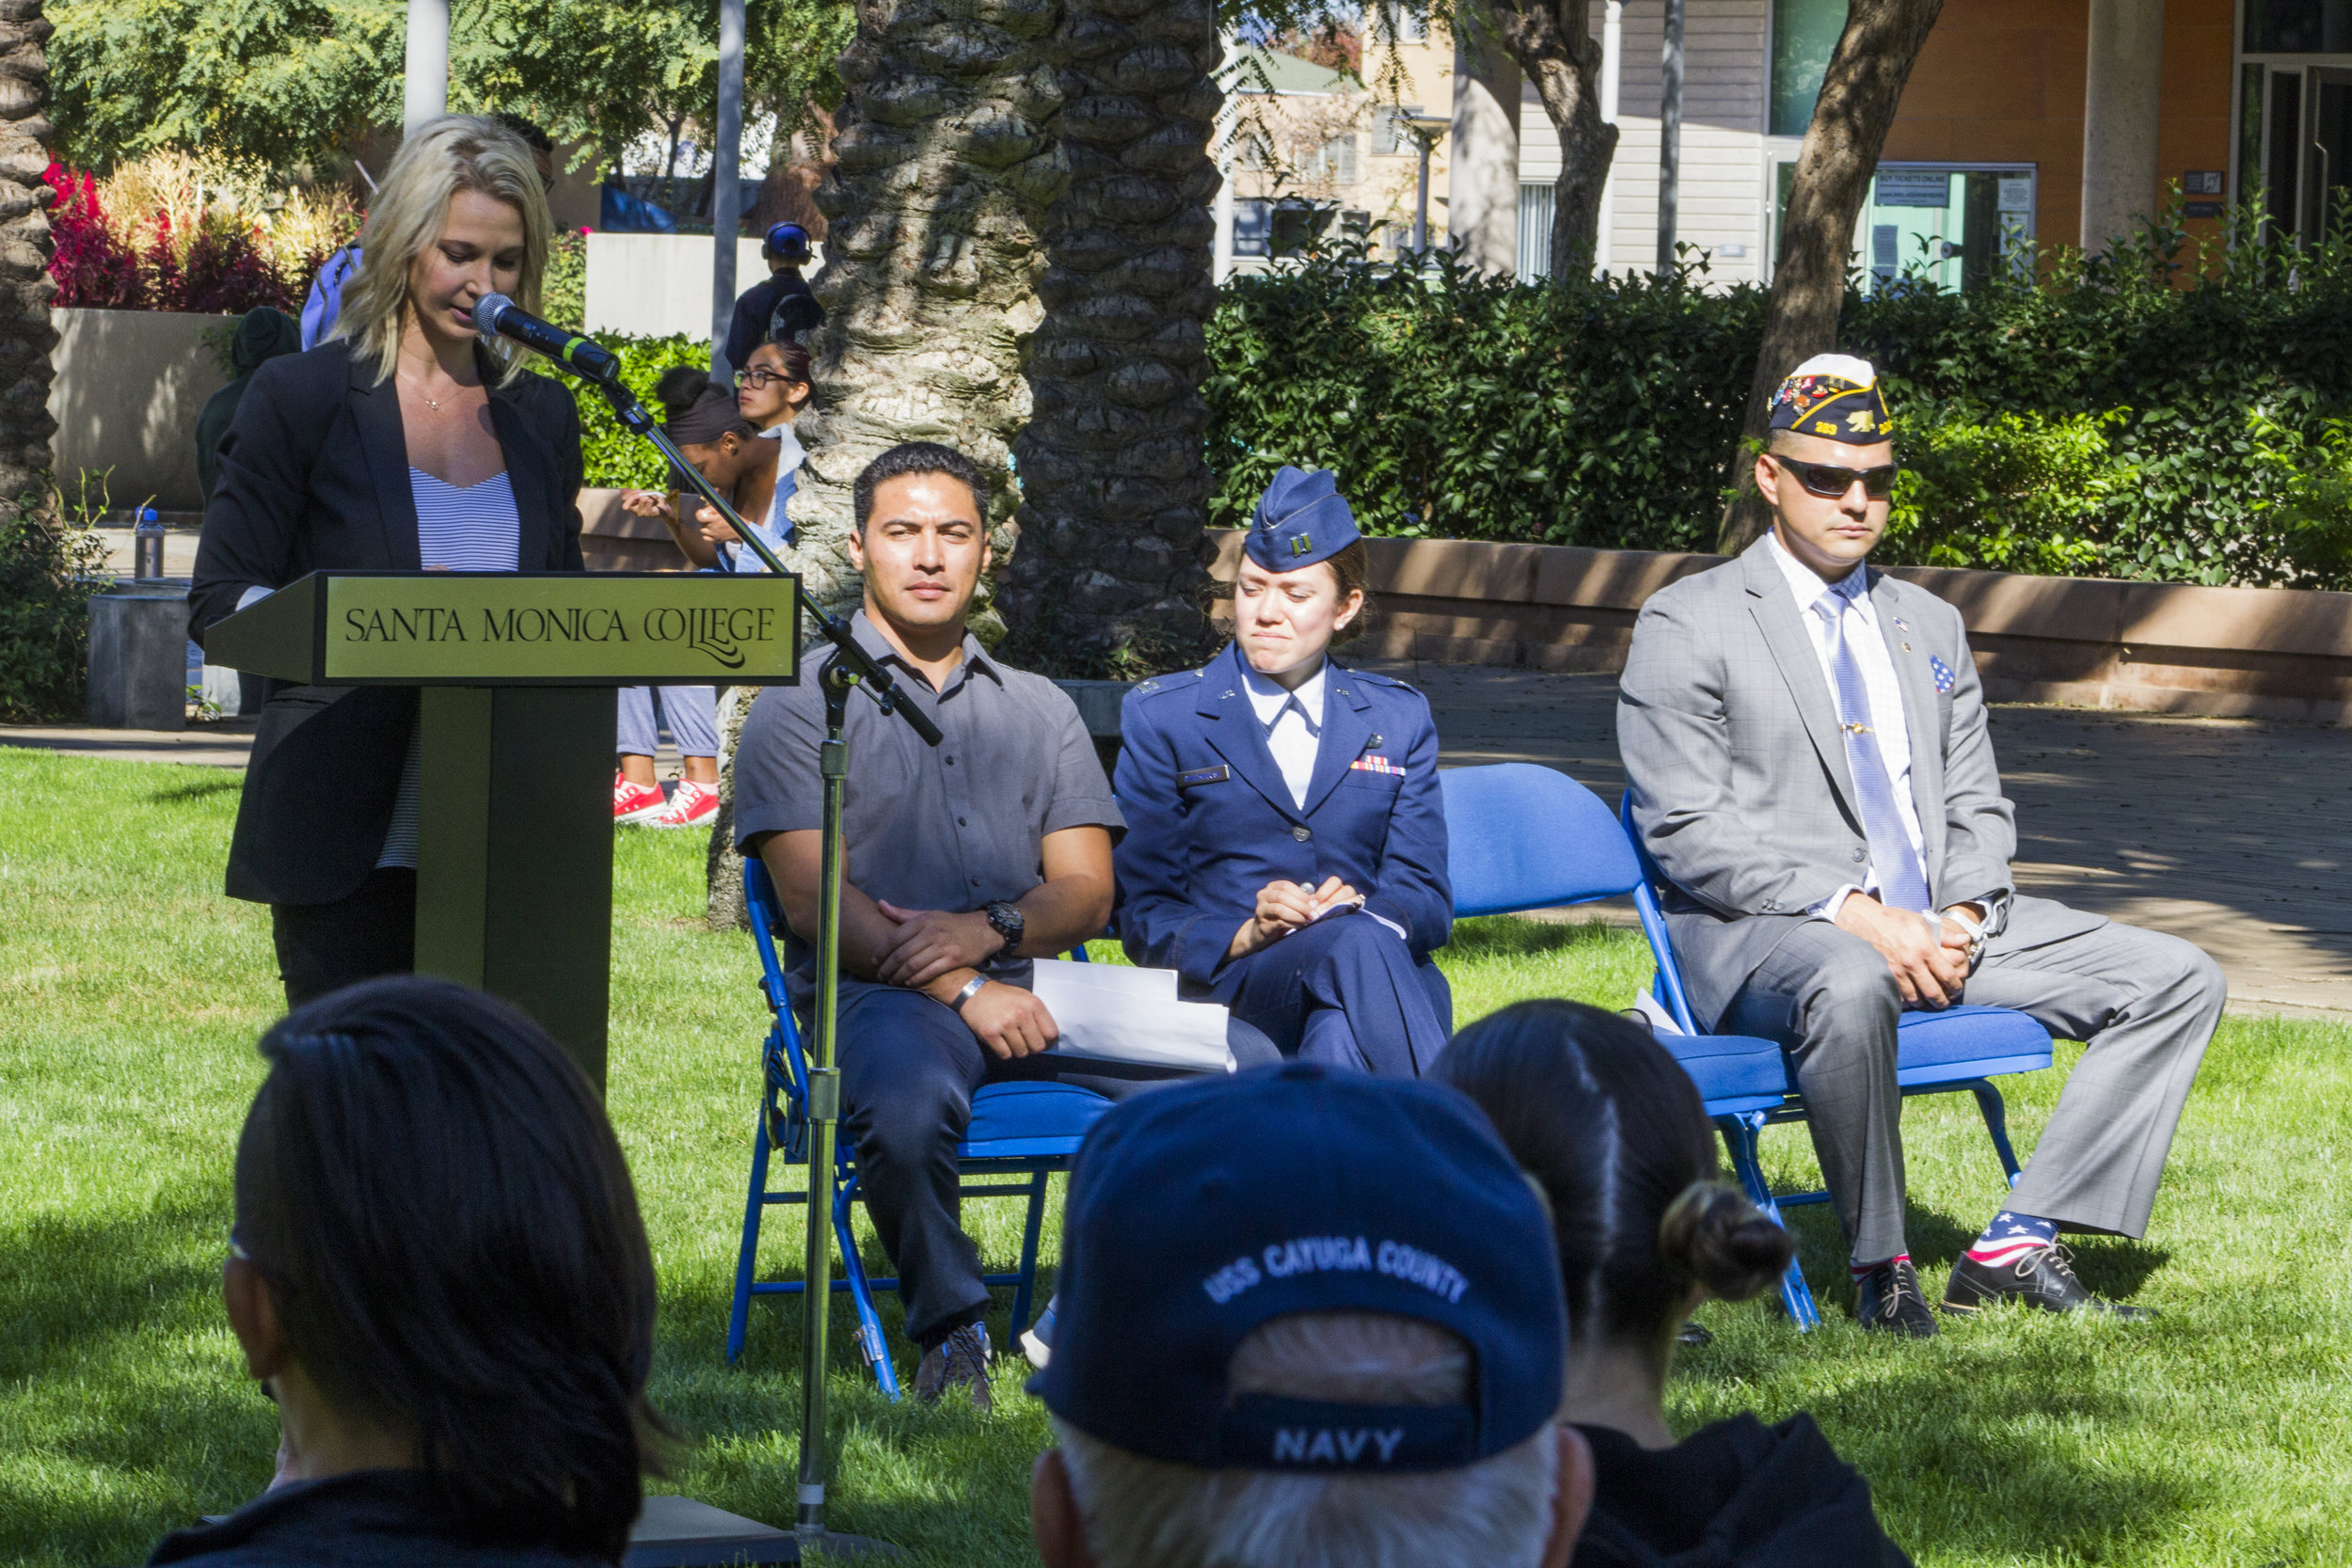 """Standing speaker, US Army Veteran Jennifer Campbell, next to (L. to R.) the President of the Student Veterans Association of Santa Monica, US Air Force Veteran Beau Espeso, US Air Force Captain Brittany Campbell and the Veteran Student Speaker from the US Marine Corps Noe Aguirre. During the Veterans Day ceremony, """"Honoring Those Who Served"""", at the Santa Monica College Main Campus, by the quad, Santa Monica, Calif. On Thursday Nov.9, 2017. Photo by Emeline Moquillon."""